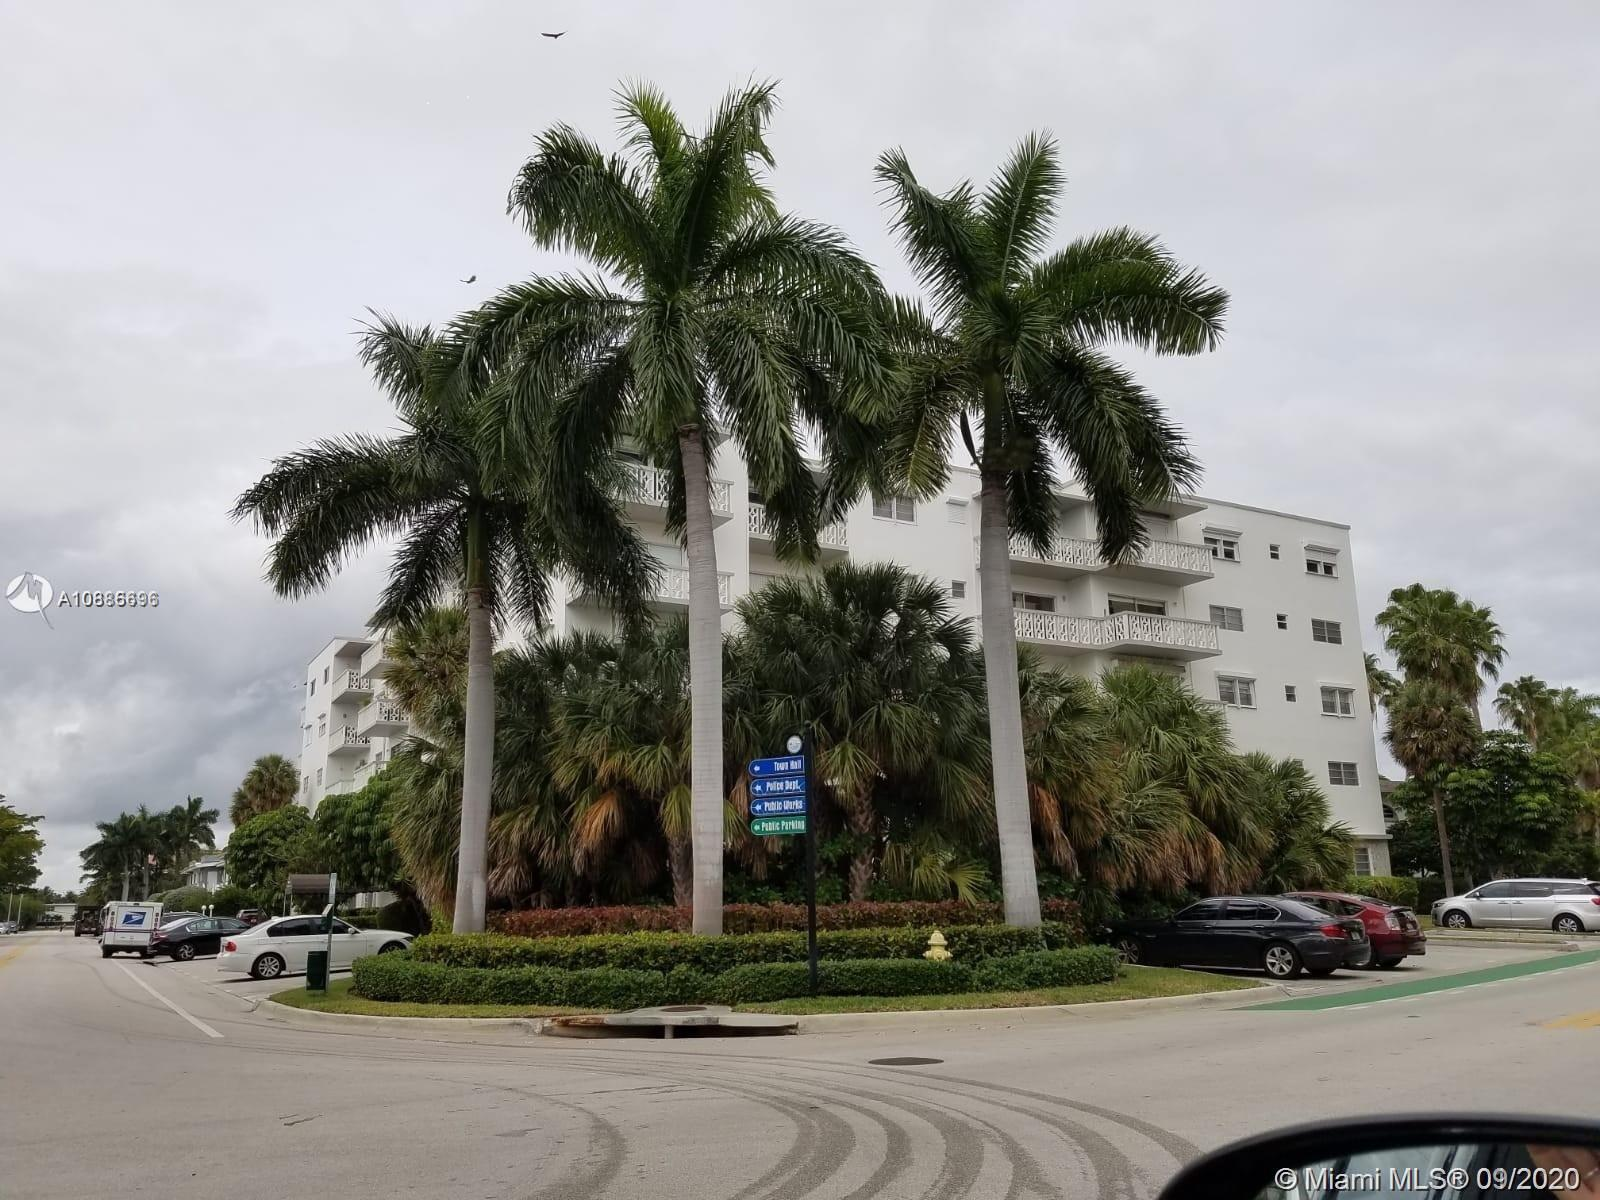 BRIGHT AND SPACIOUS 1 BED 1/1 BATH IN EXCELLENT LOCATION, NEW PAINT, NEW FLOORS, RENOVATED KITCHEN, WALKING DISTANCE TO THE BEACH, BAL HARBOR SHOPS, RESTAURANTS, BANKS, SUPERMARKET, DOCTOR'S OFFICE, PARKS, SCHOOL, FISHING PIER. CLOSE TO SOUTH BEACH. 20 MINUTES FROM FT. LAUDERDALE AND MIAMI AIRPORT. BUILDING HAS A NEW BEAUTIFUL LOBBY AND MAJOR RENOVATION.